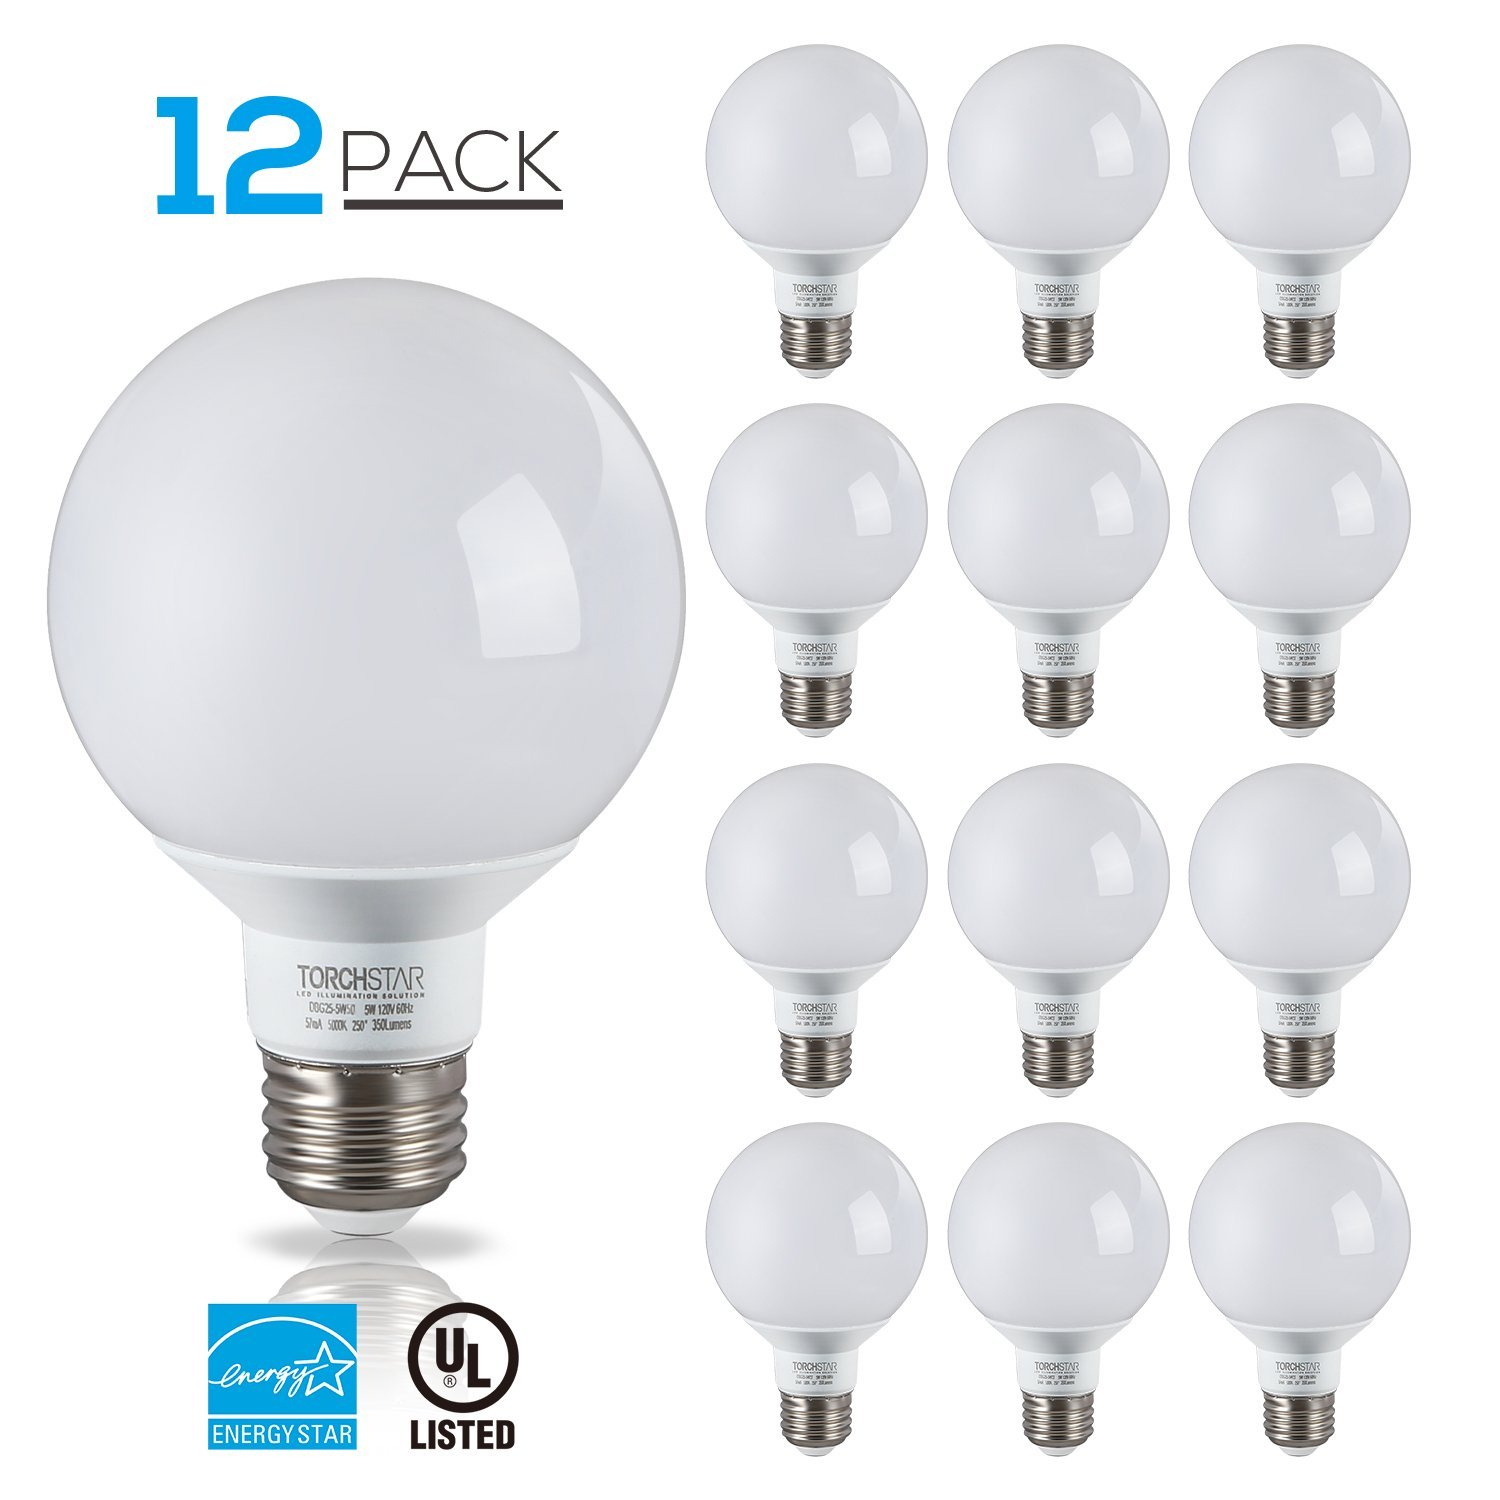 TORCHSTAR 12 Pack 5W G25 LED Bulbs, LED Light Bulbs, LED Globe Light Bulbs, Globe Vanity Light for Bath, Pendant, Dressing Room, Medium E26 Base, 2700K Soft White